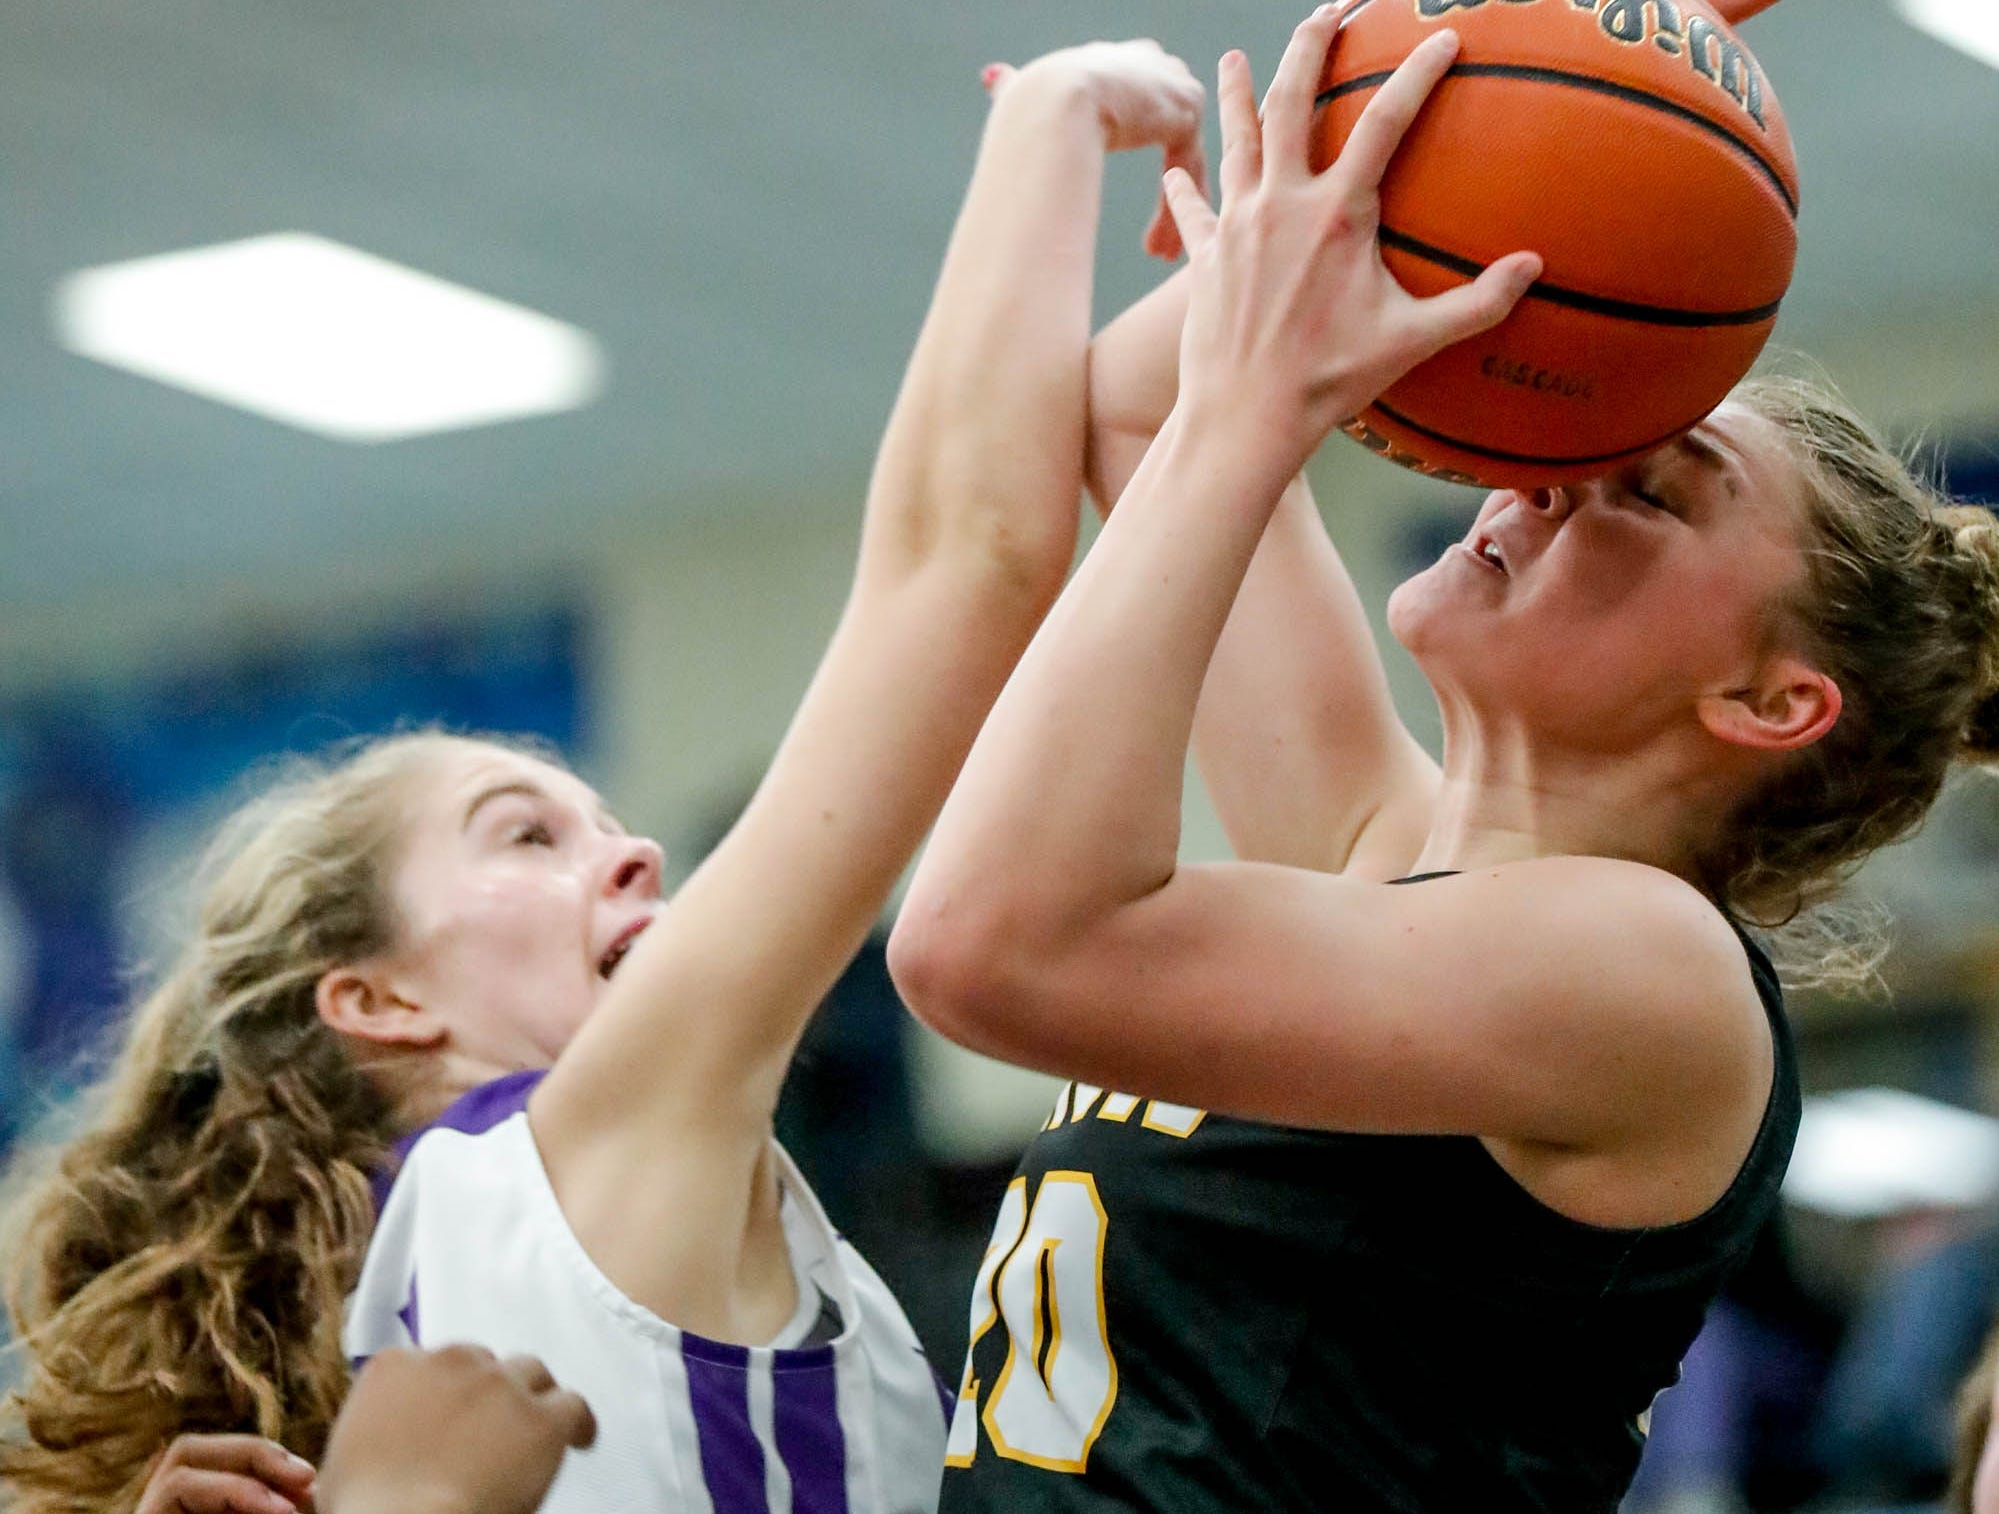 Avon High School's forward Alex Richard (20), takes a ball to the face during a 2019 Hendricks County Basketball Tournament game between the Avon High School girls varsity basketball team and Brownsburg High School, held at Cascade High School on Saturday, Jan. 5, 2019. Brownsburg High School's guard Victoria Olmstead (21), left.